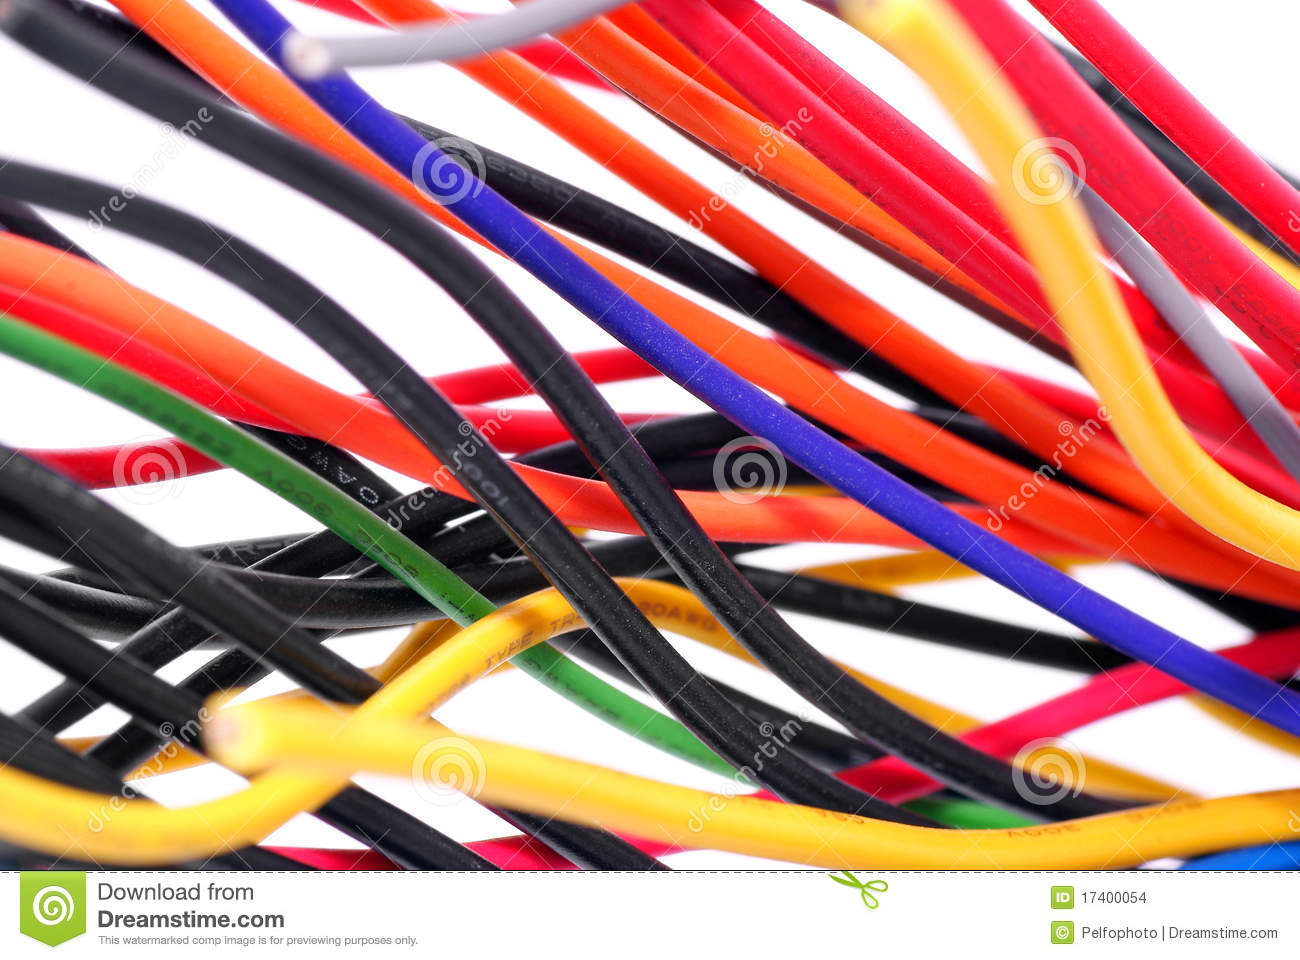 Electrical wires.